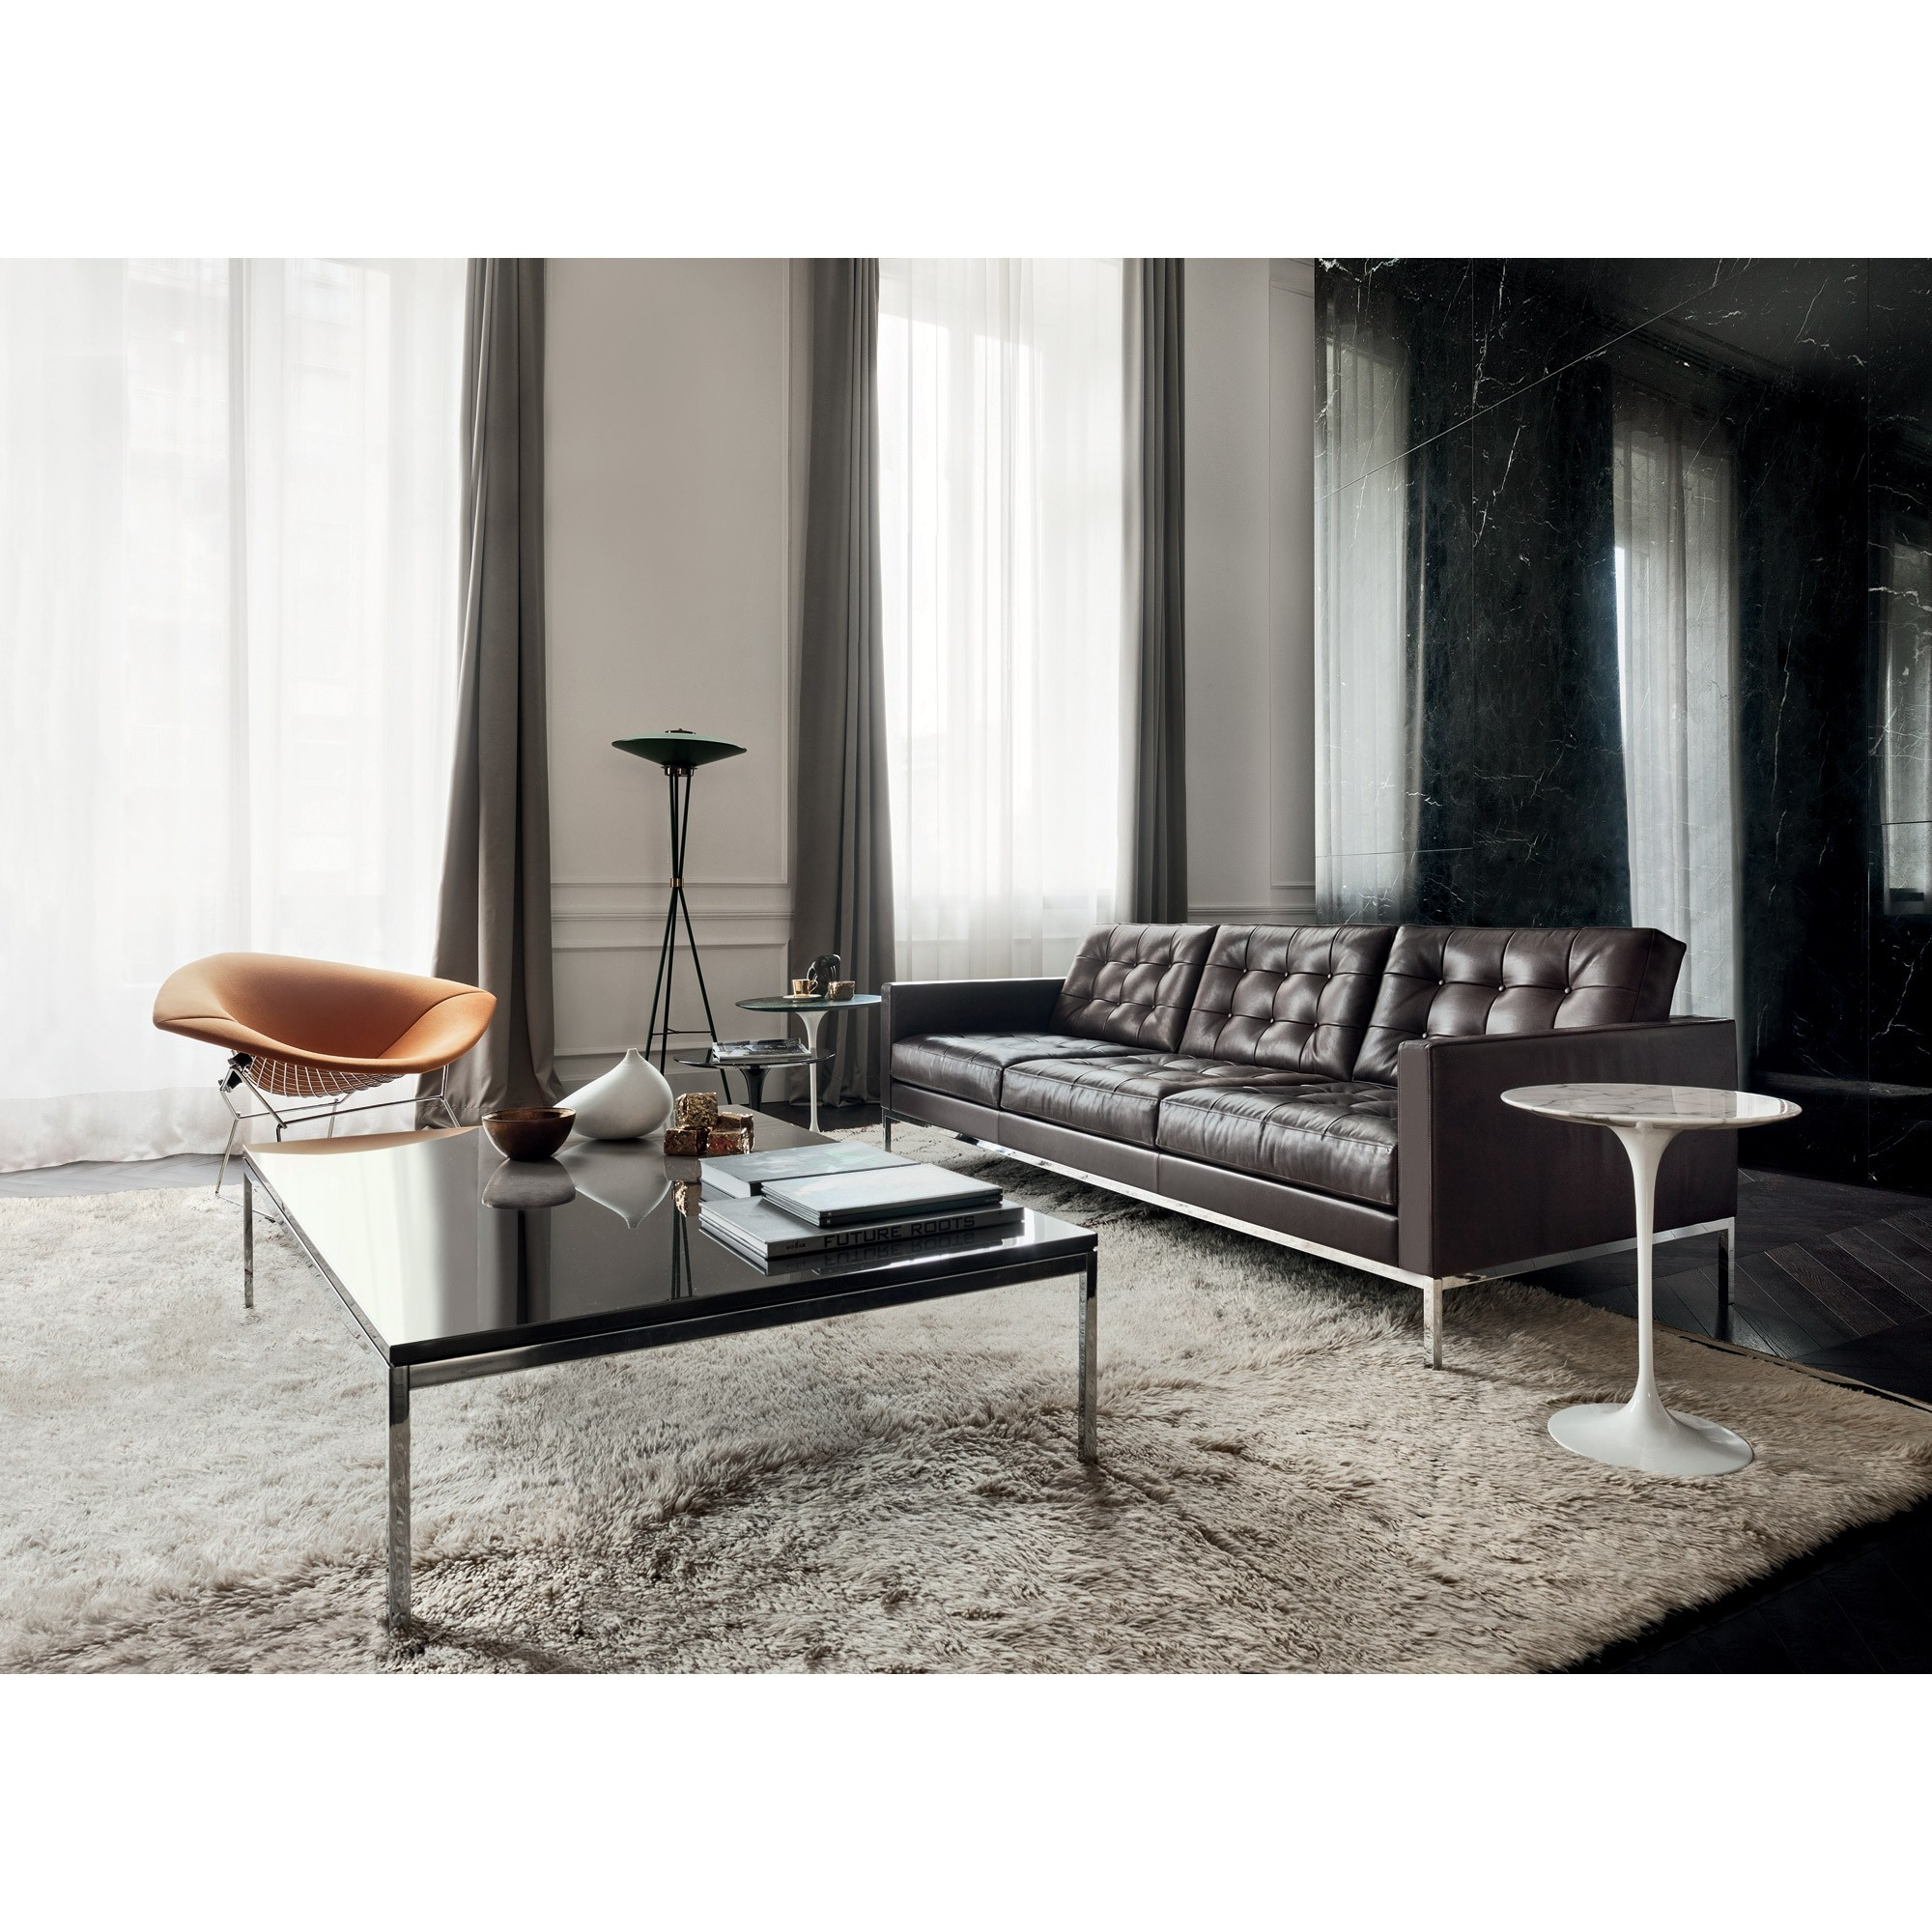 Natuzzi Editions Florence Leather Sofa Reviews Rs Gold Sofa Within Florence Knoll Leather Sofas (View 7 of 15)